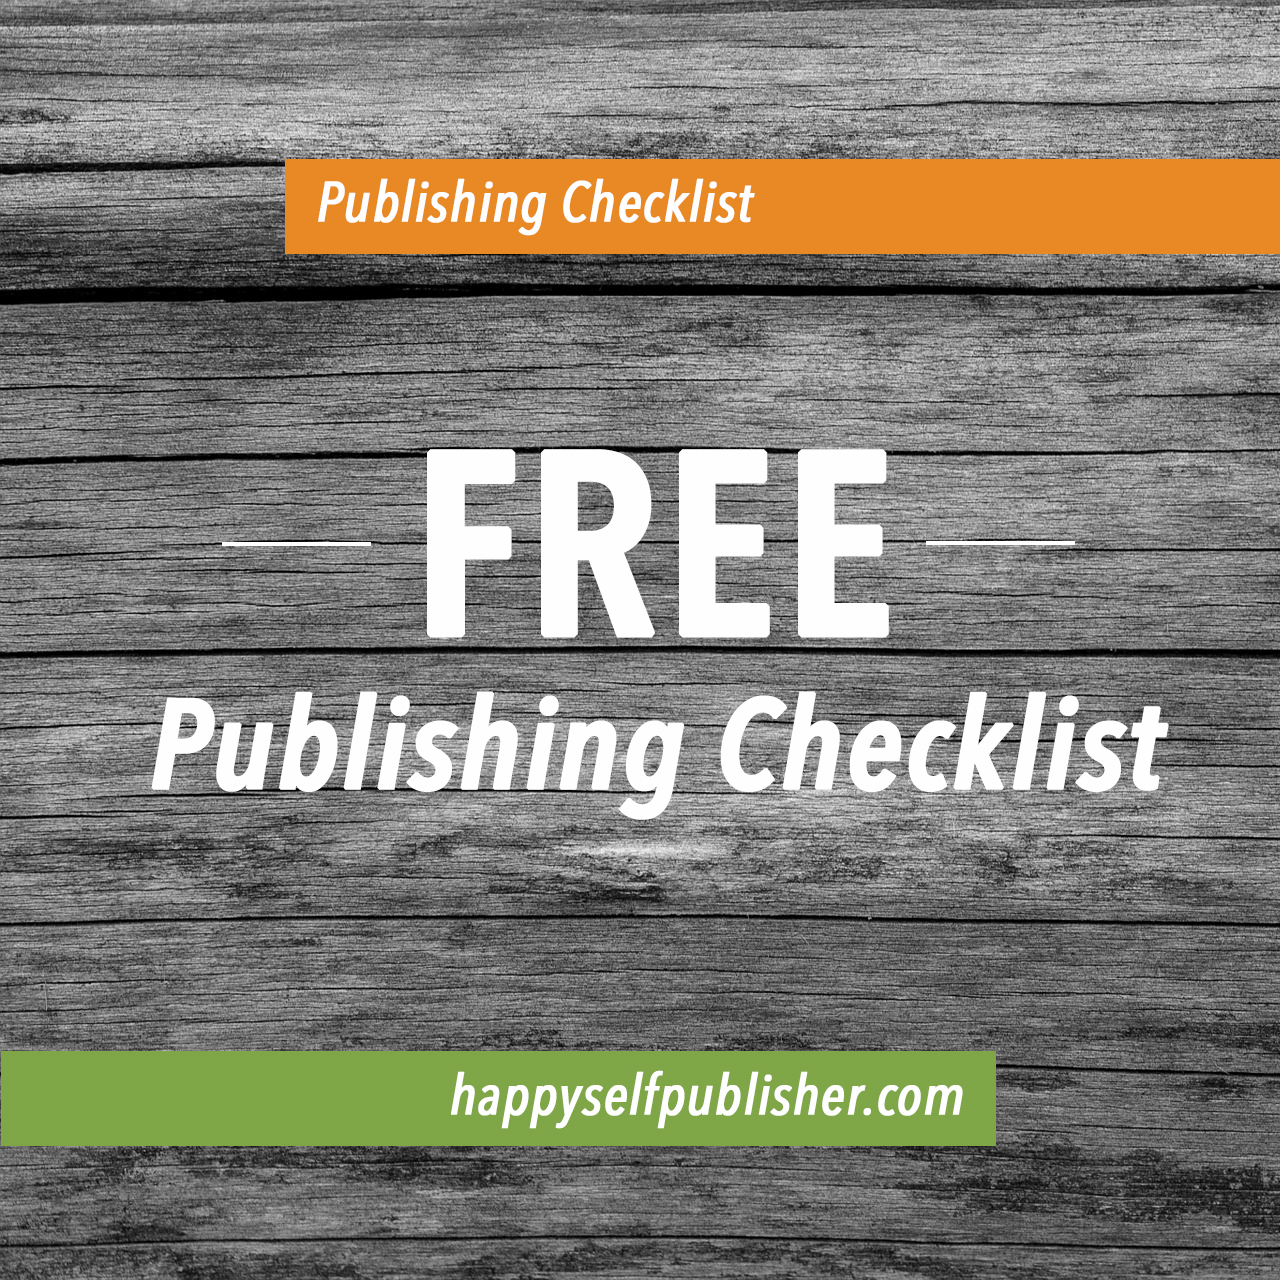 Self-Publishing Checklist